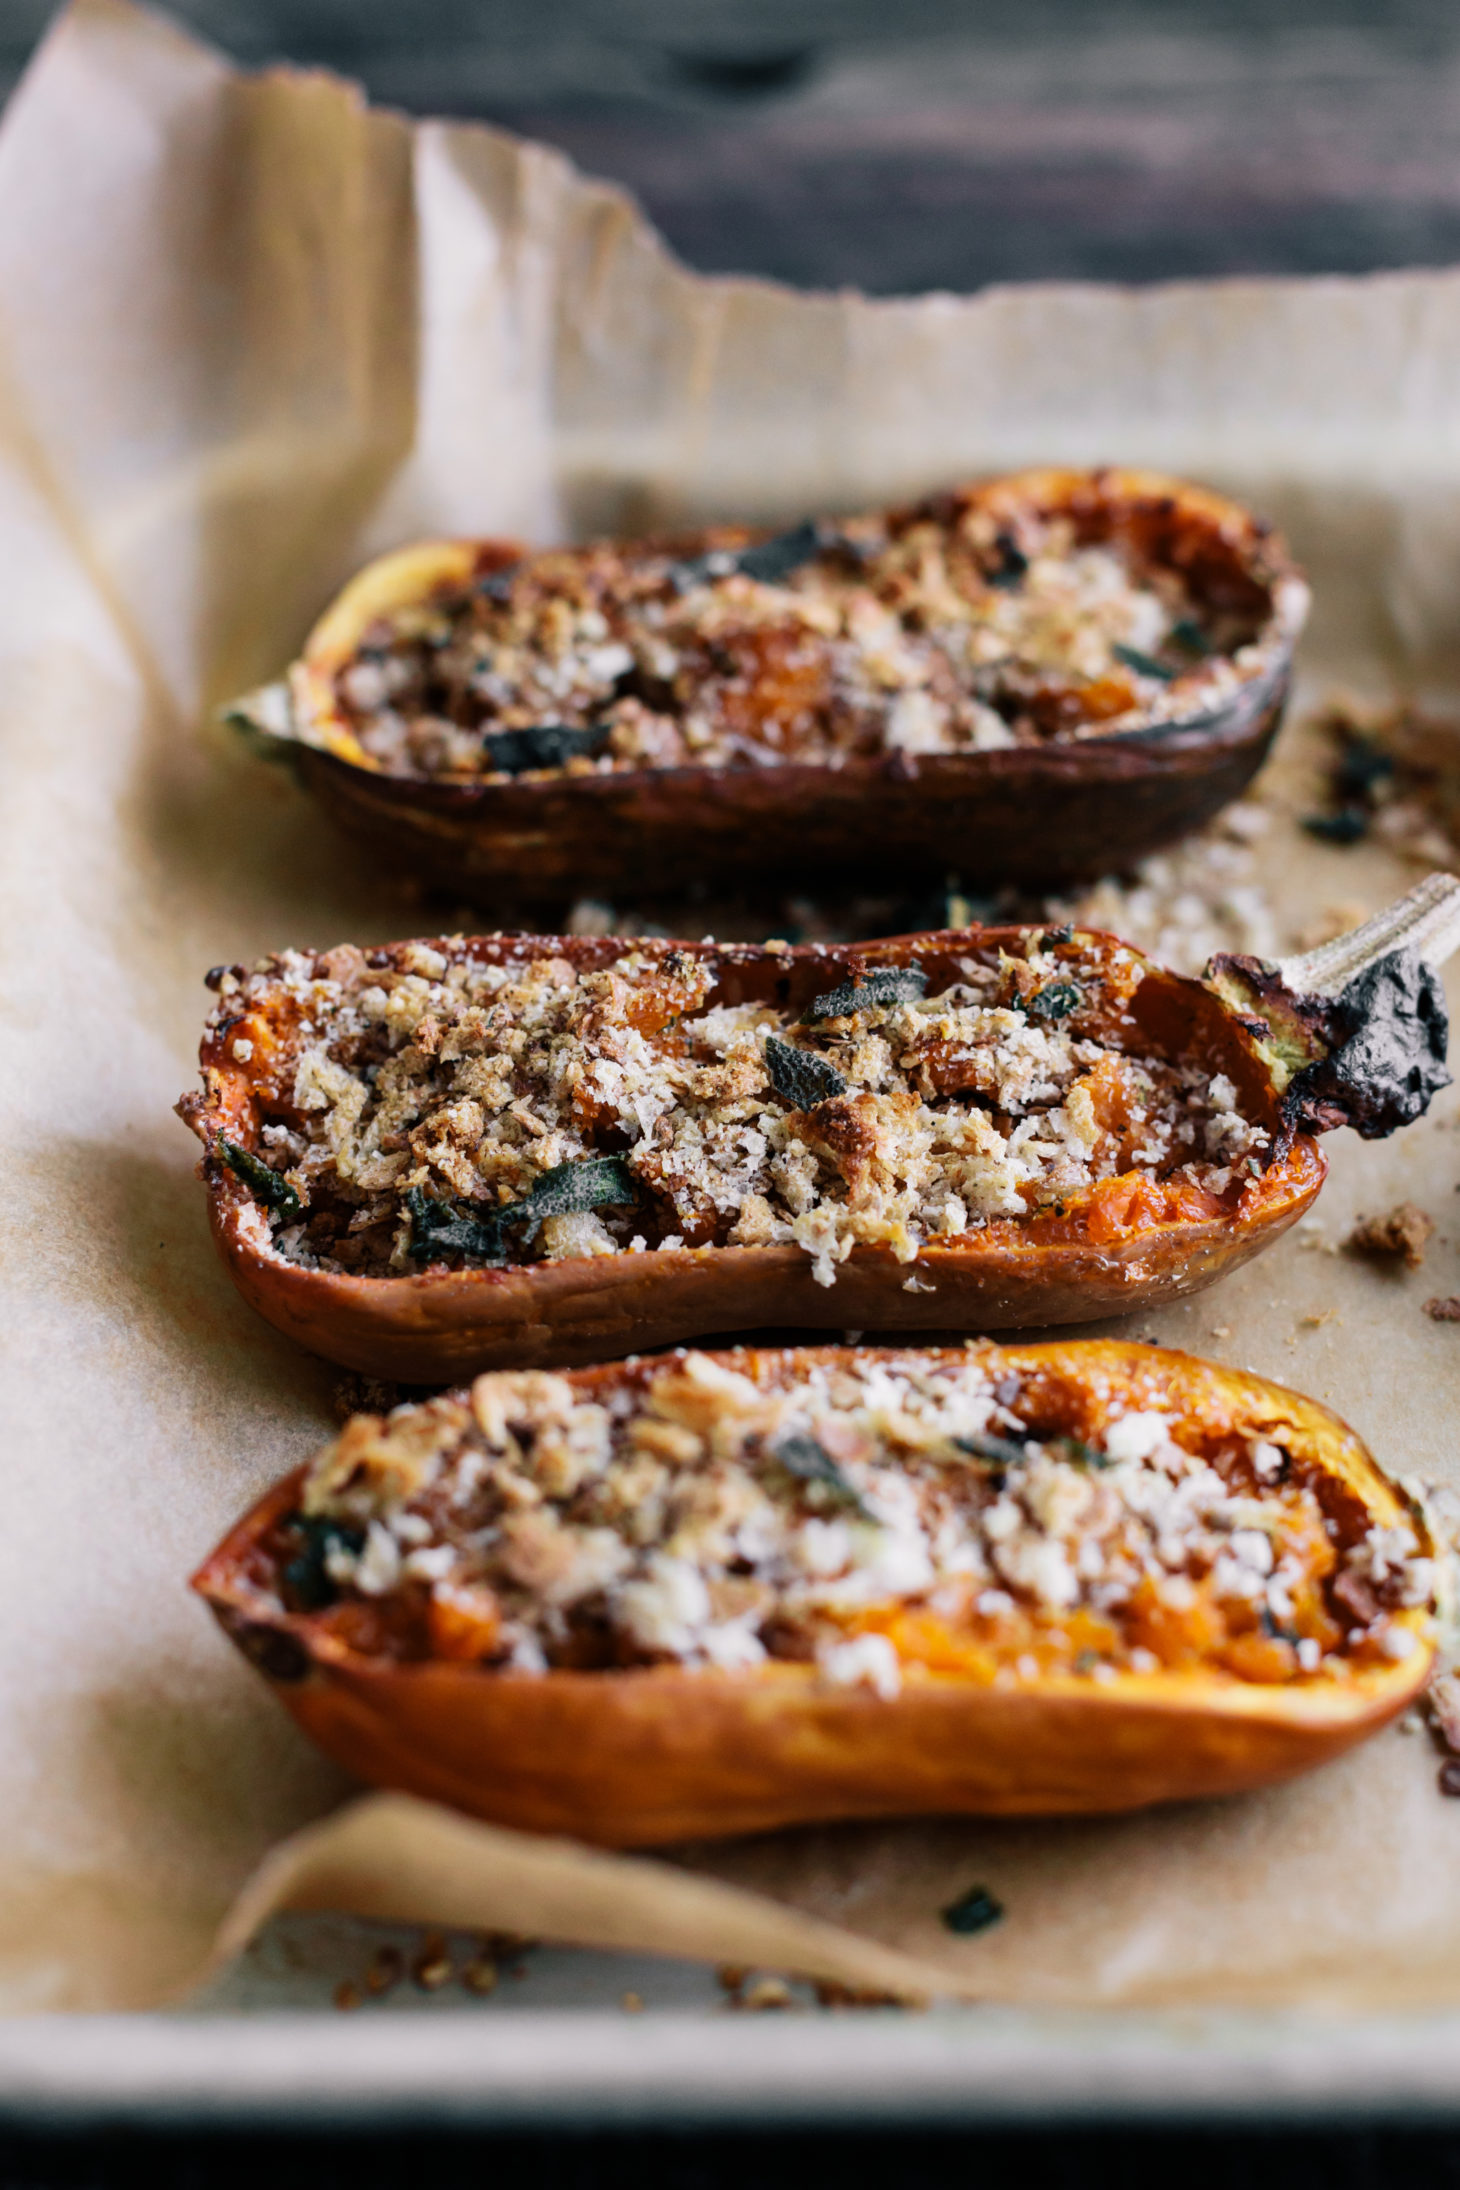 Side shot photo of twice-baked honeynut squash with breadcrumbs and brown butter